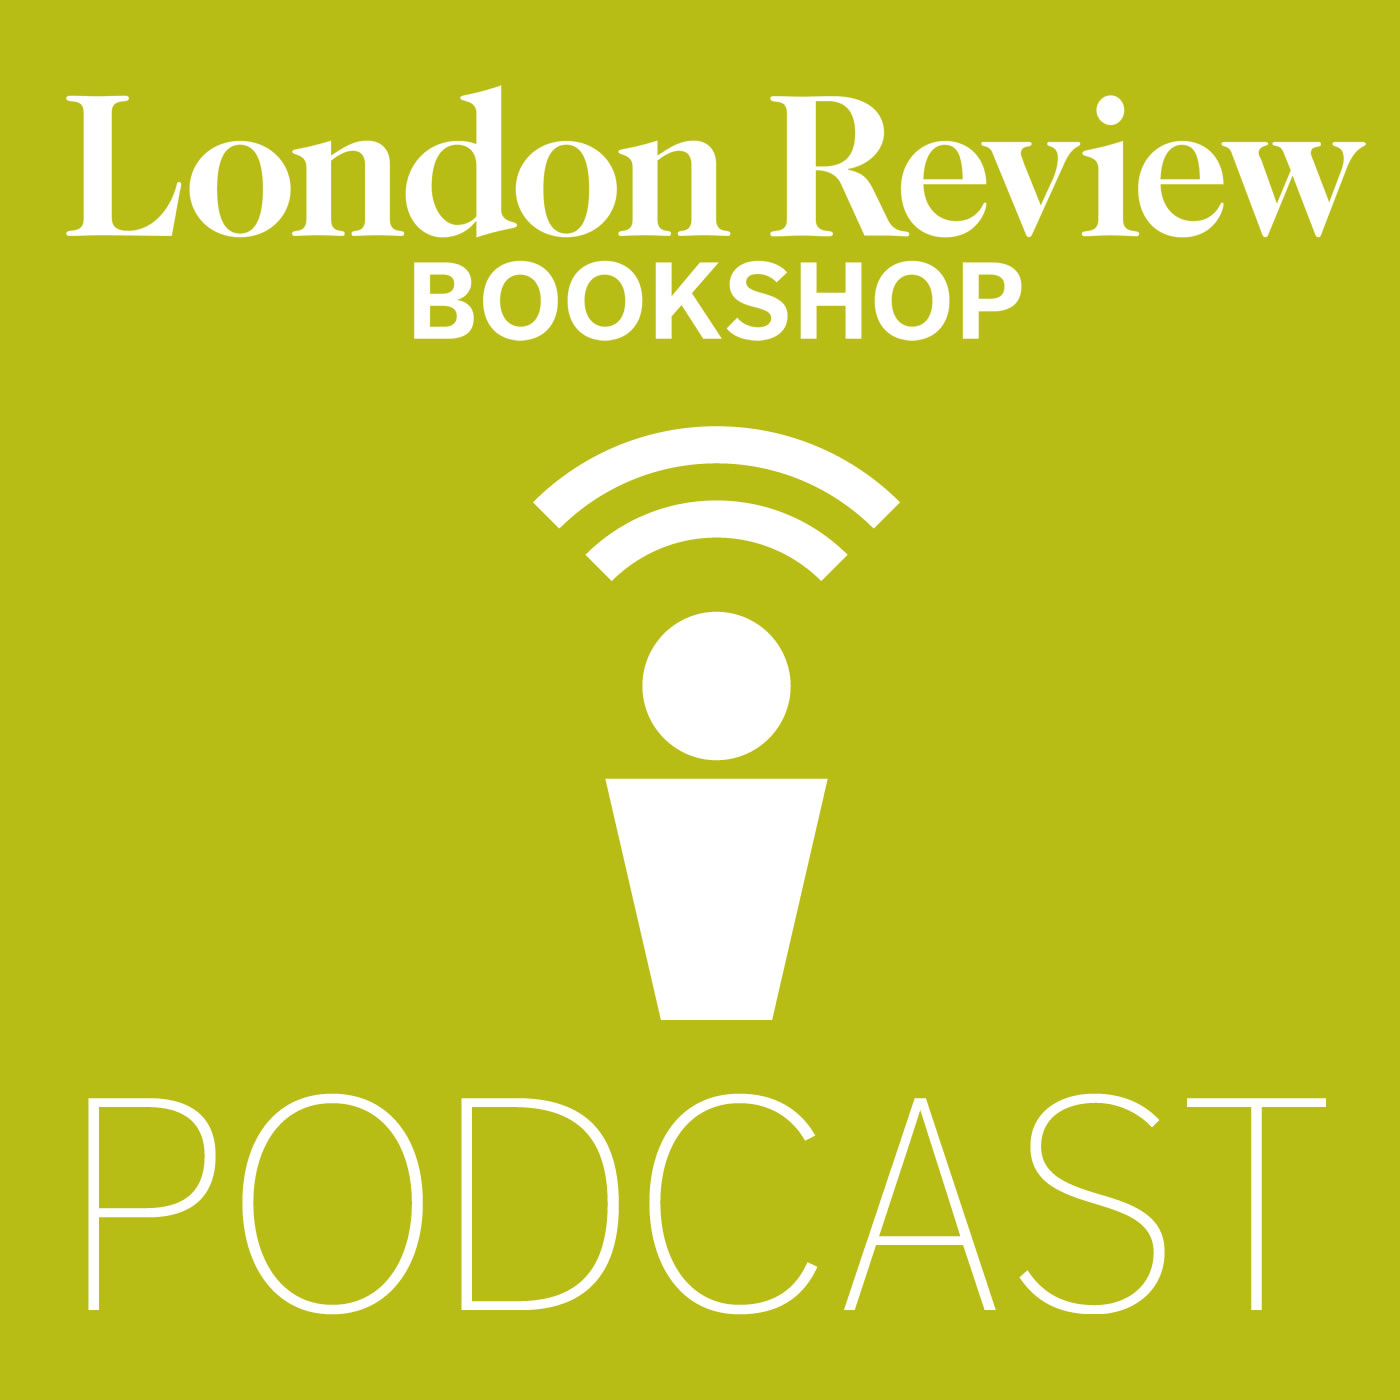 London Review Bookshop Podcasts